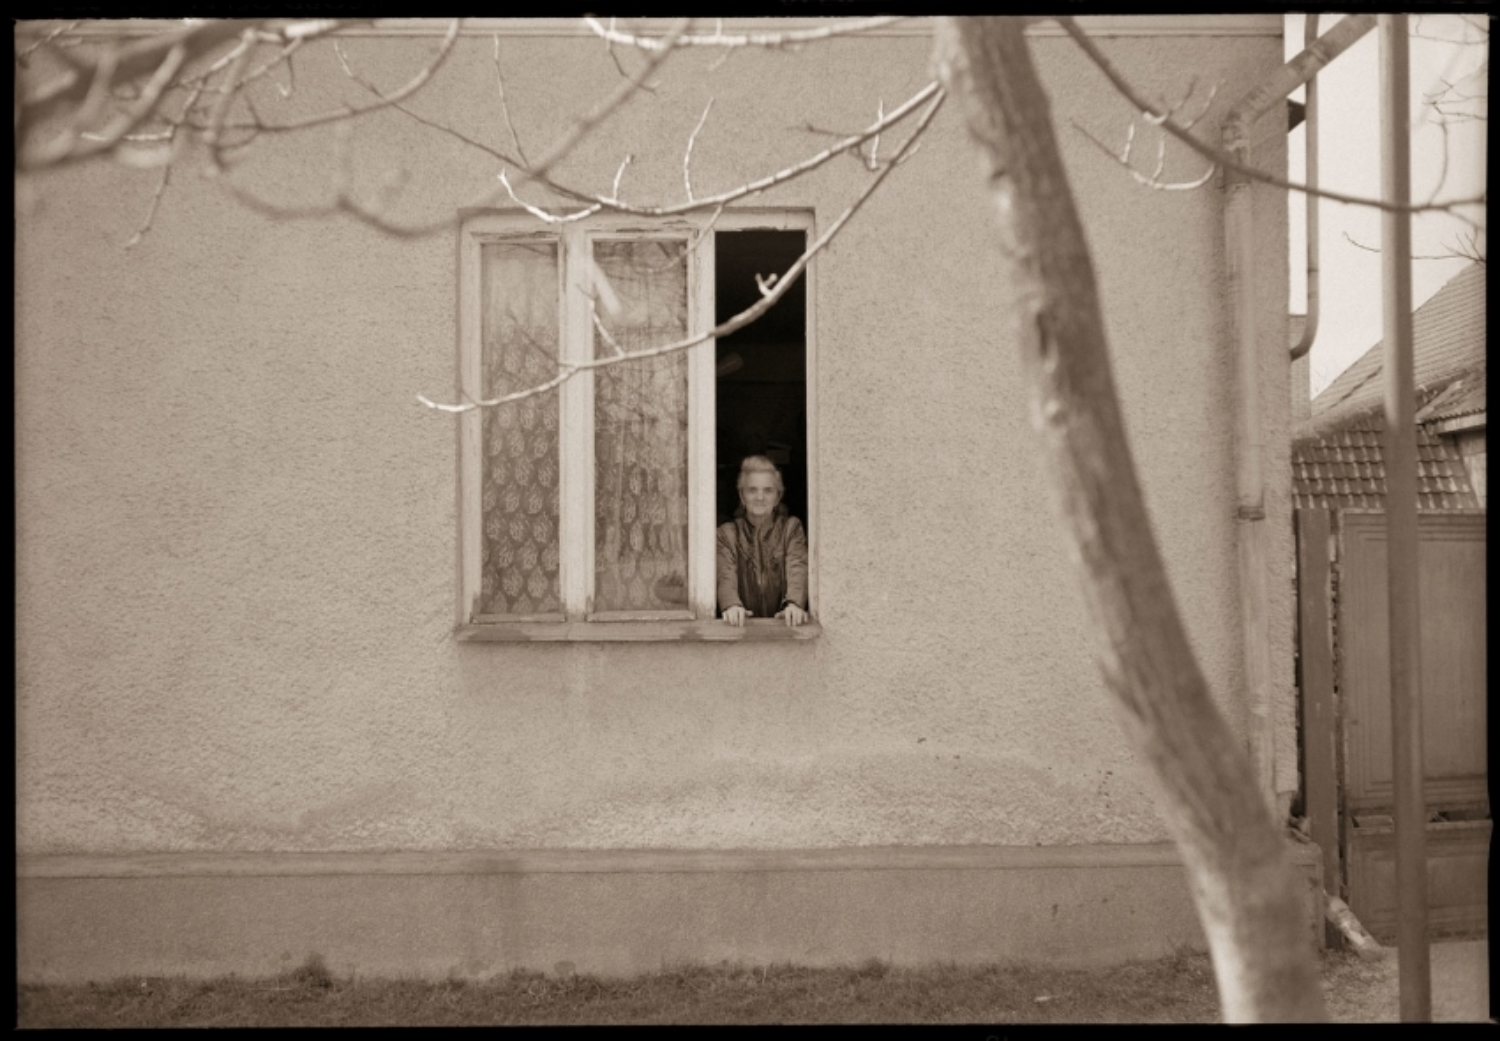 Helena at her Window